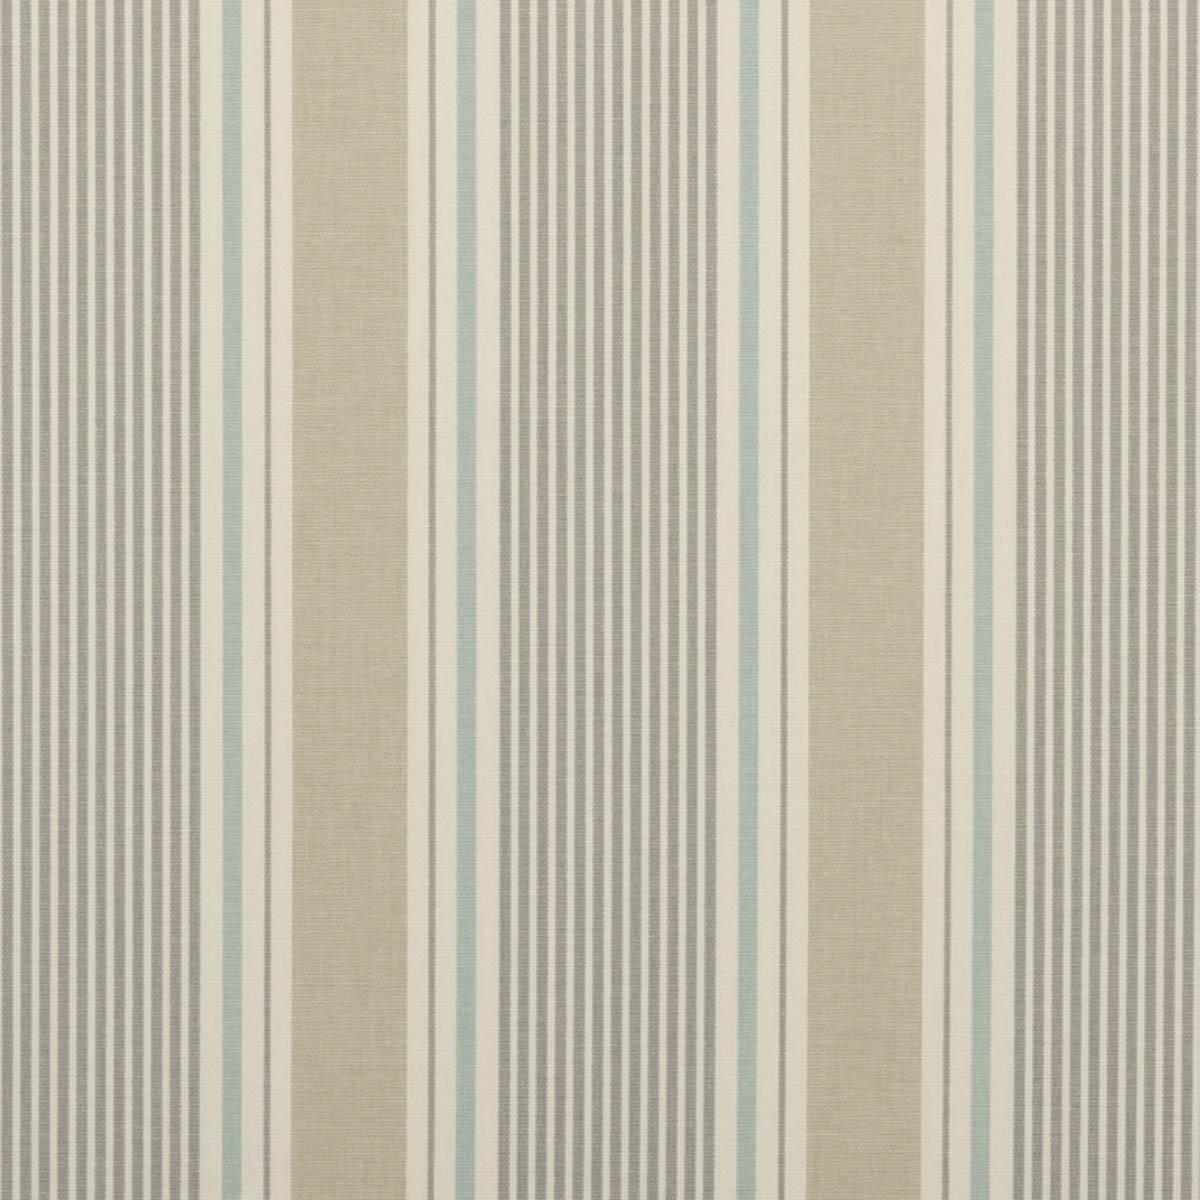 Kitchen Curtains Fabric Curtains Fabric Stripe Drapes: Sail Stripe Curtain Fabric Surf